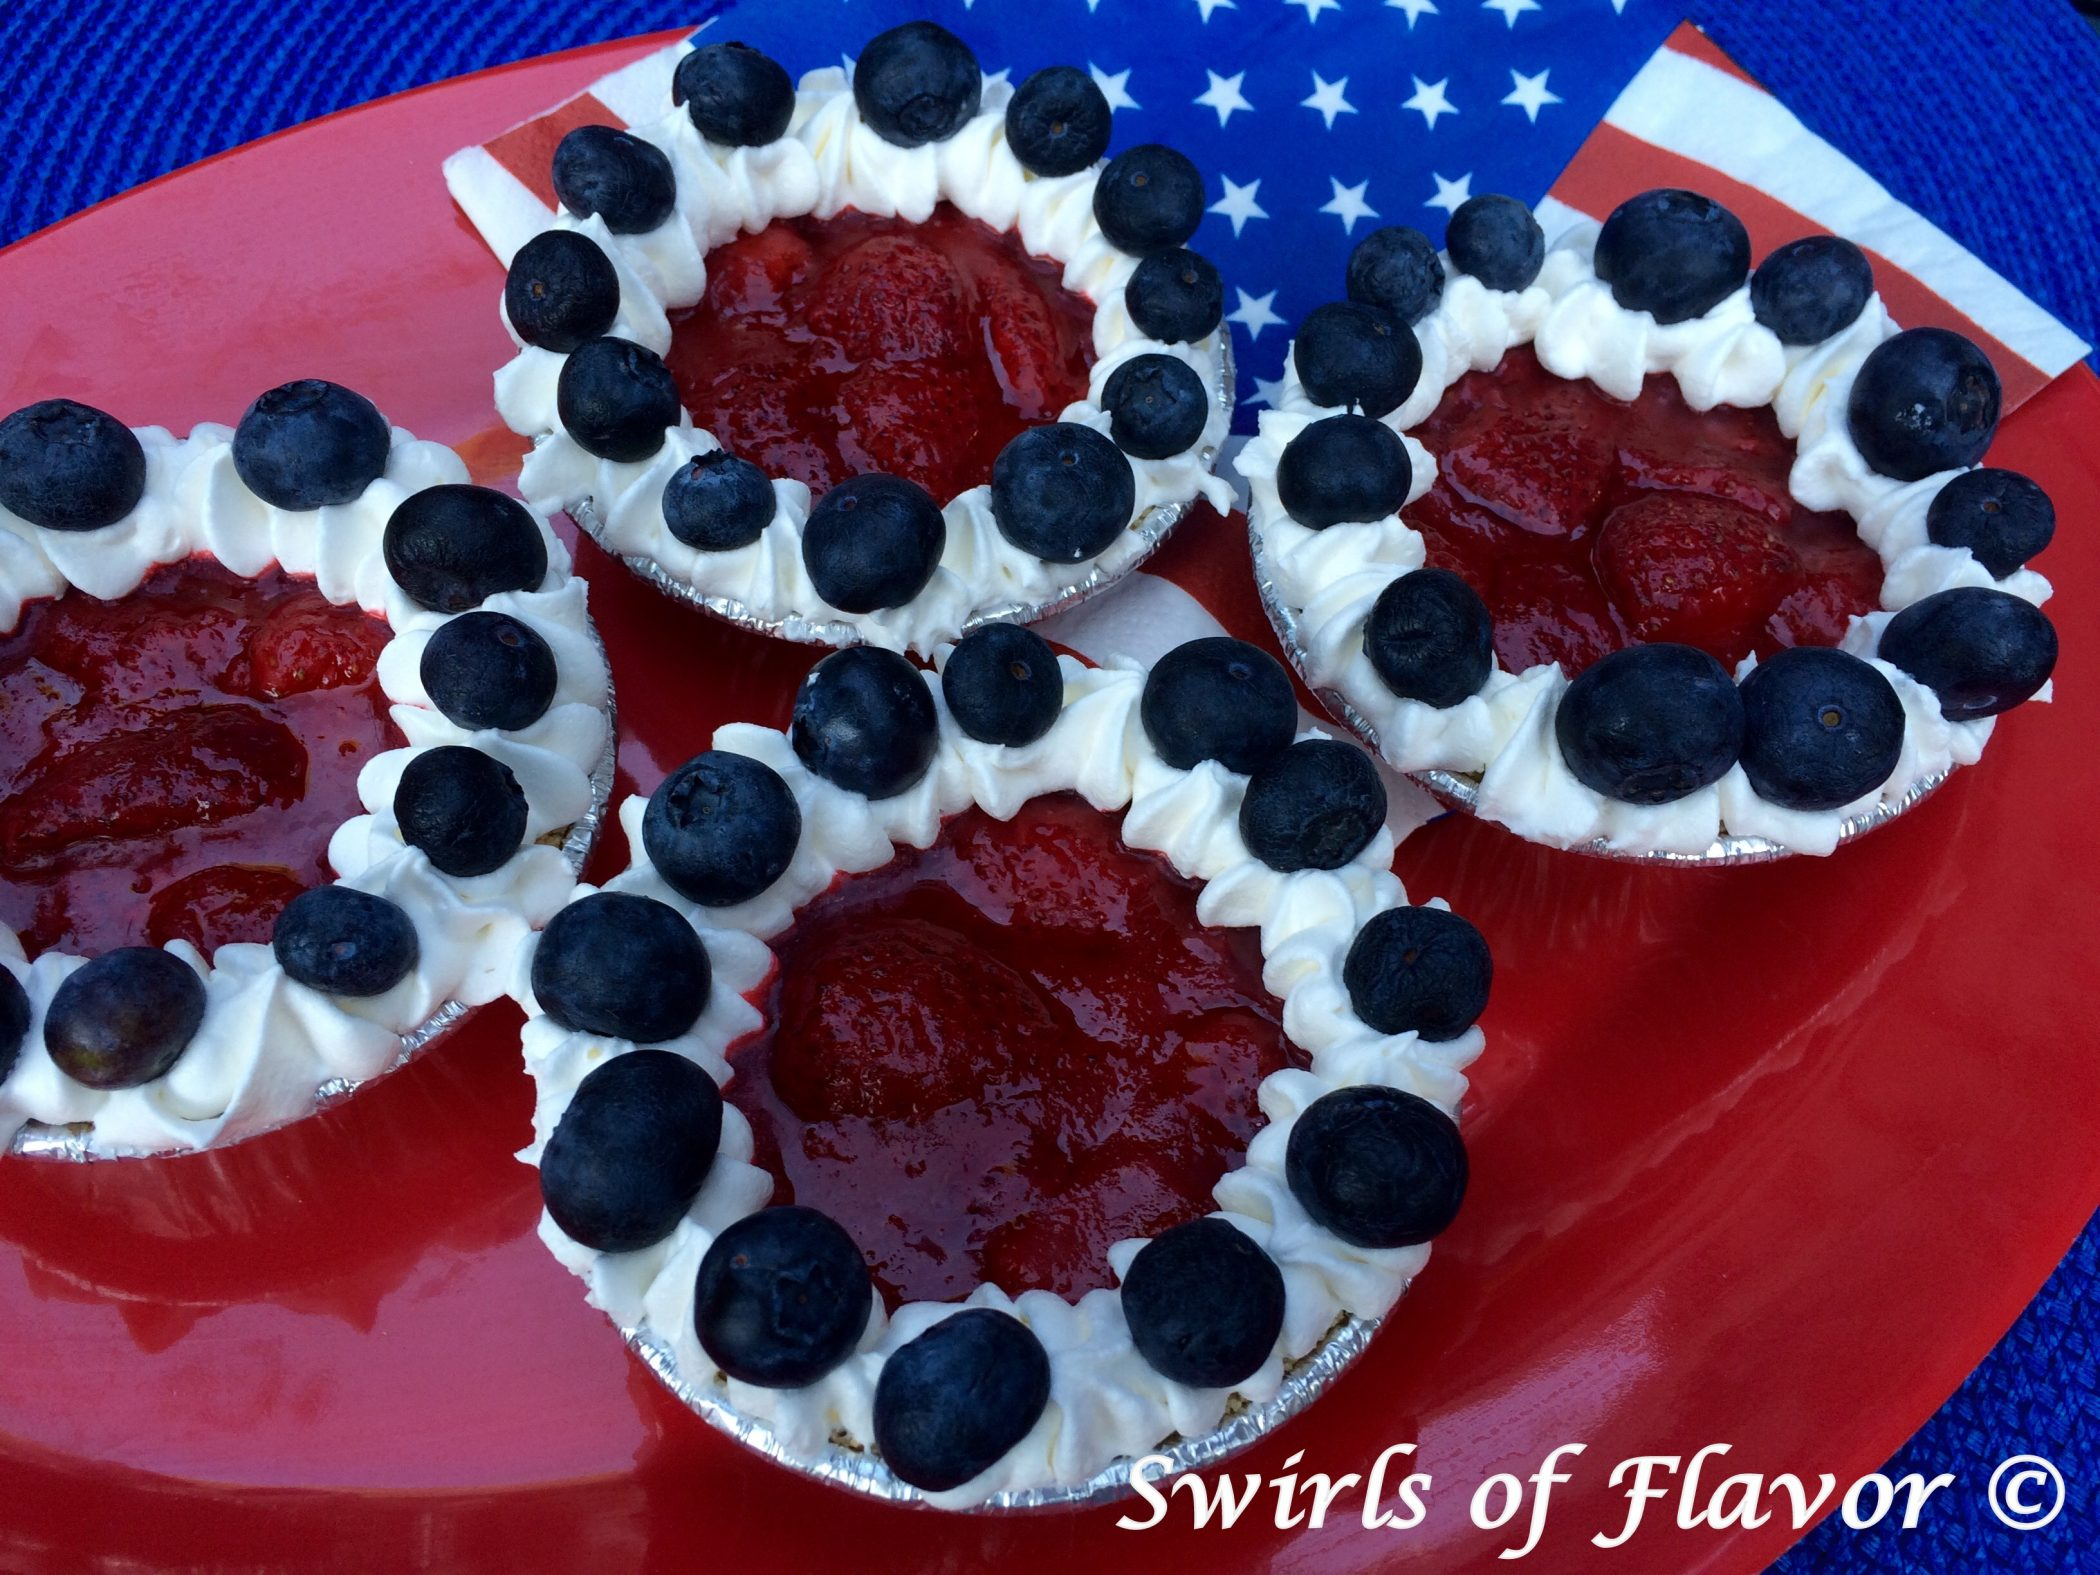 Berry Pies with red white and blue napkin